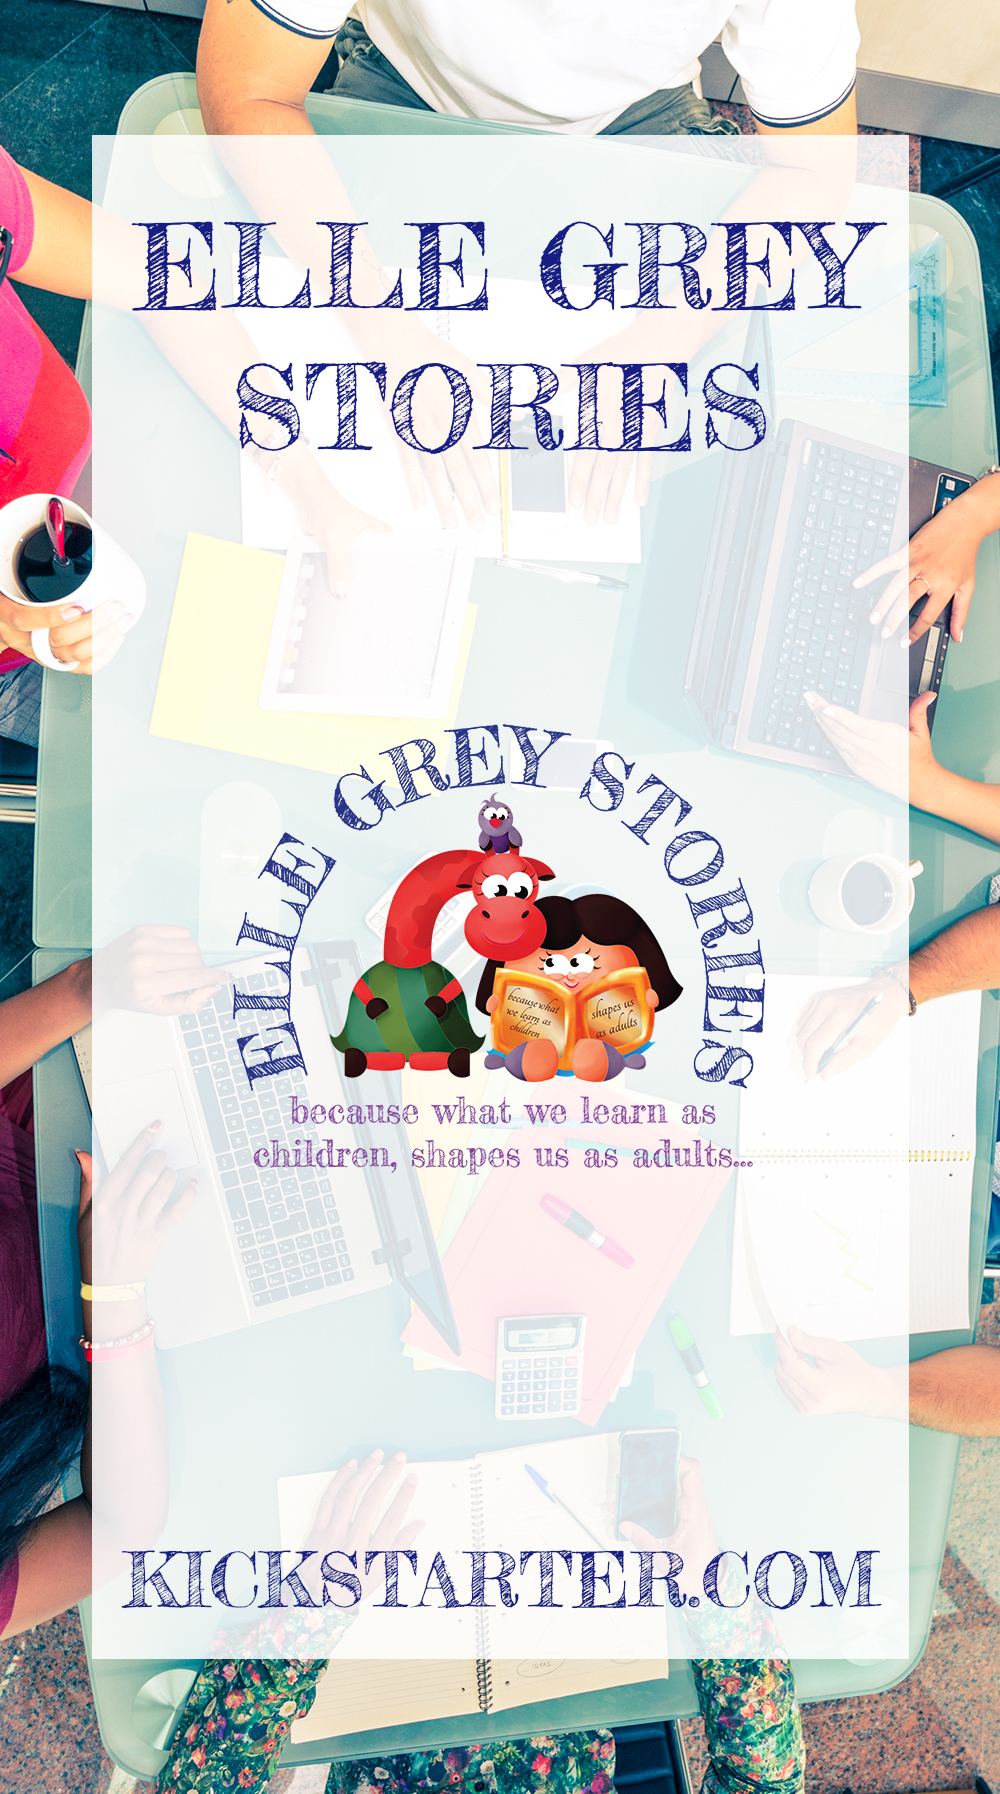 https://www.kickstarter.com/projects/931936901/elle-grey-stories?ref=friends_launched